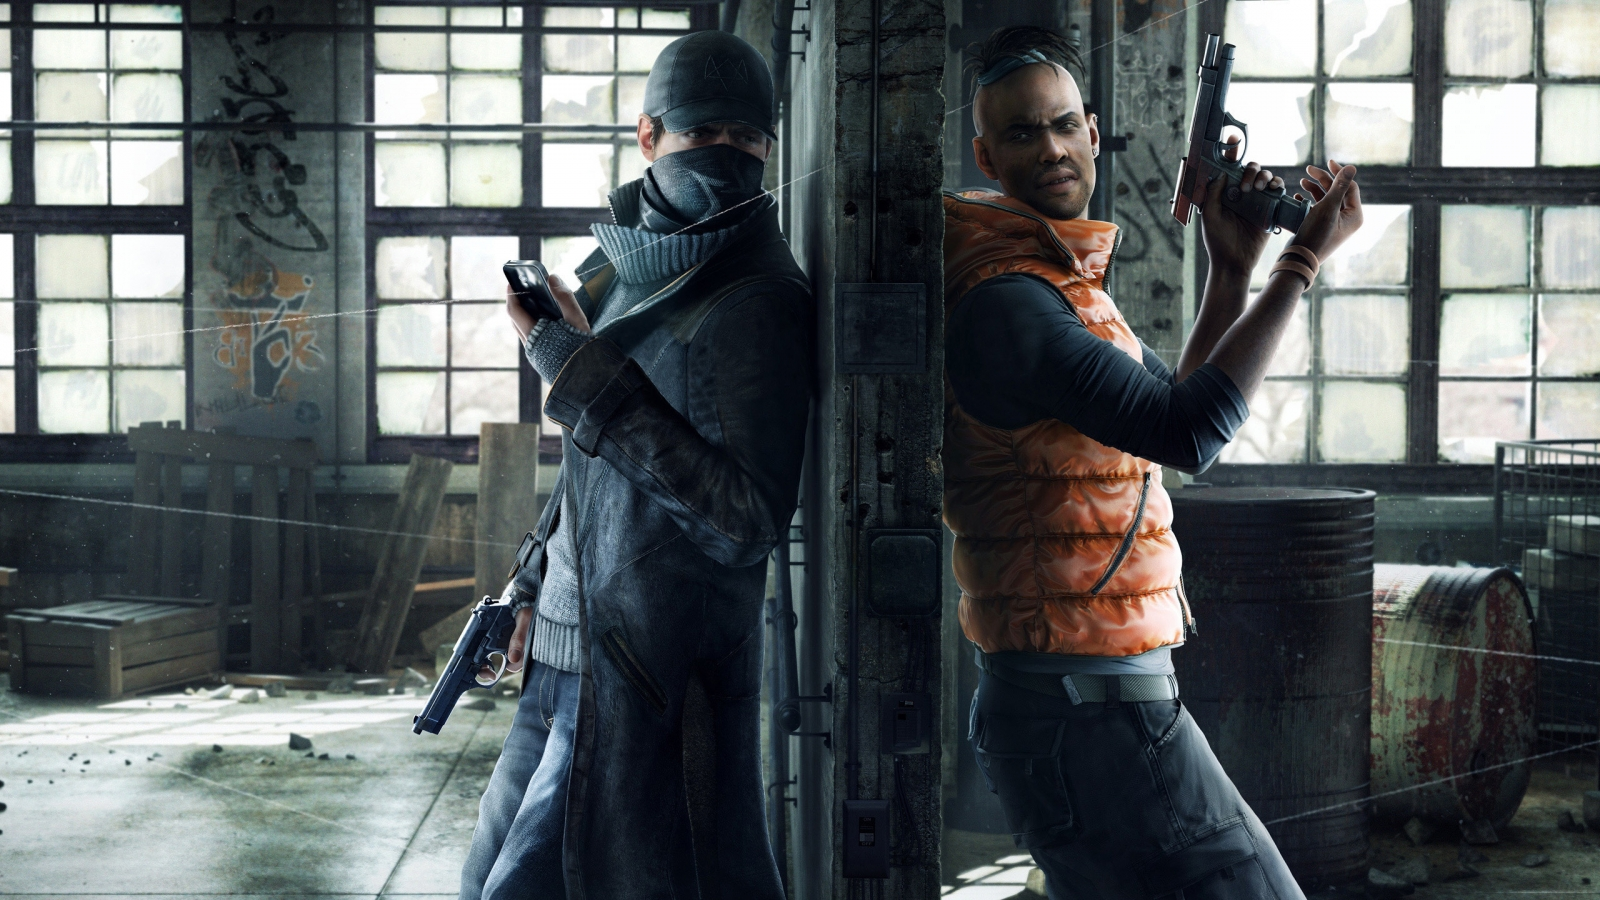 Watchdogs Aiden and Wade for 1600 x 900 HDTV resolution